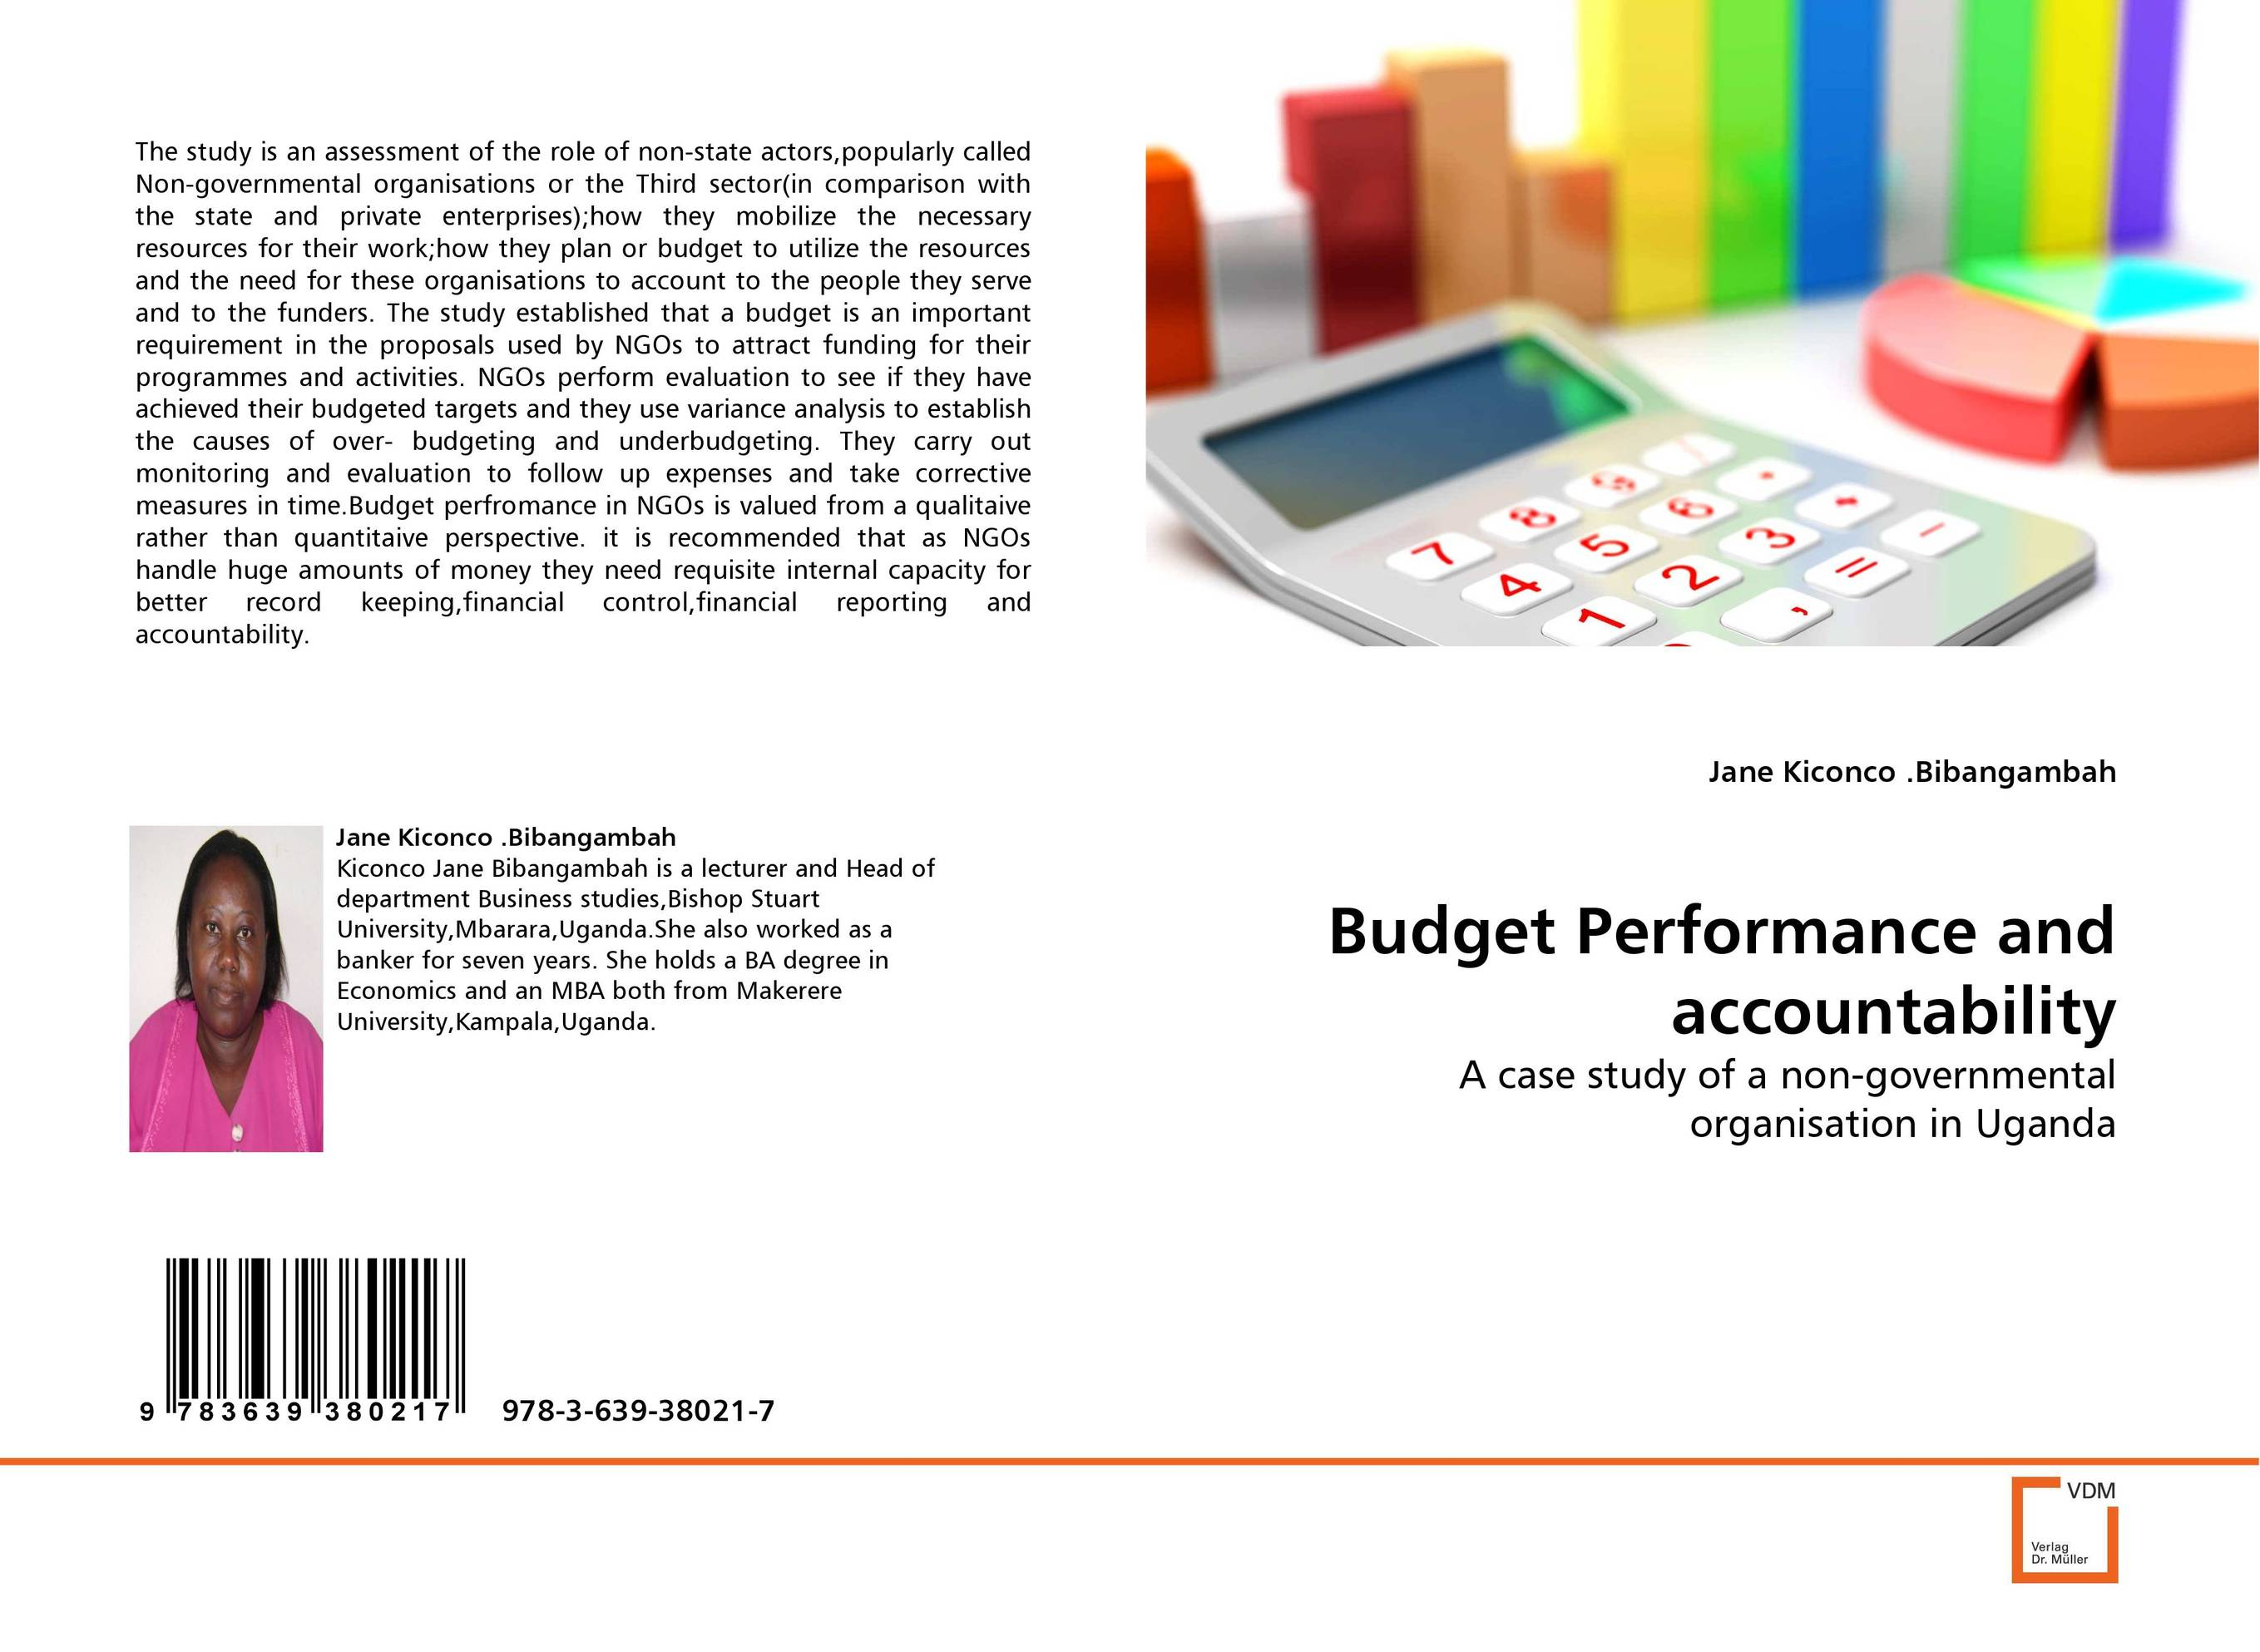 Budget Performance and accountability puccini la boheme video cassette